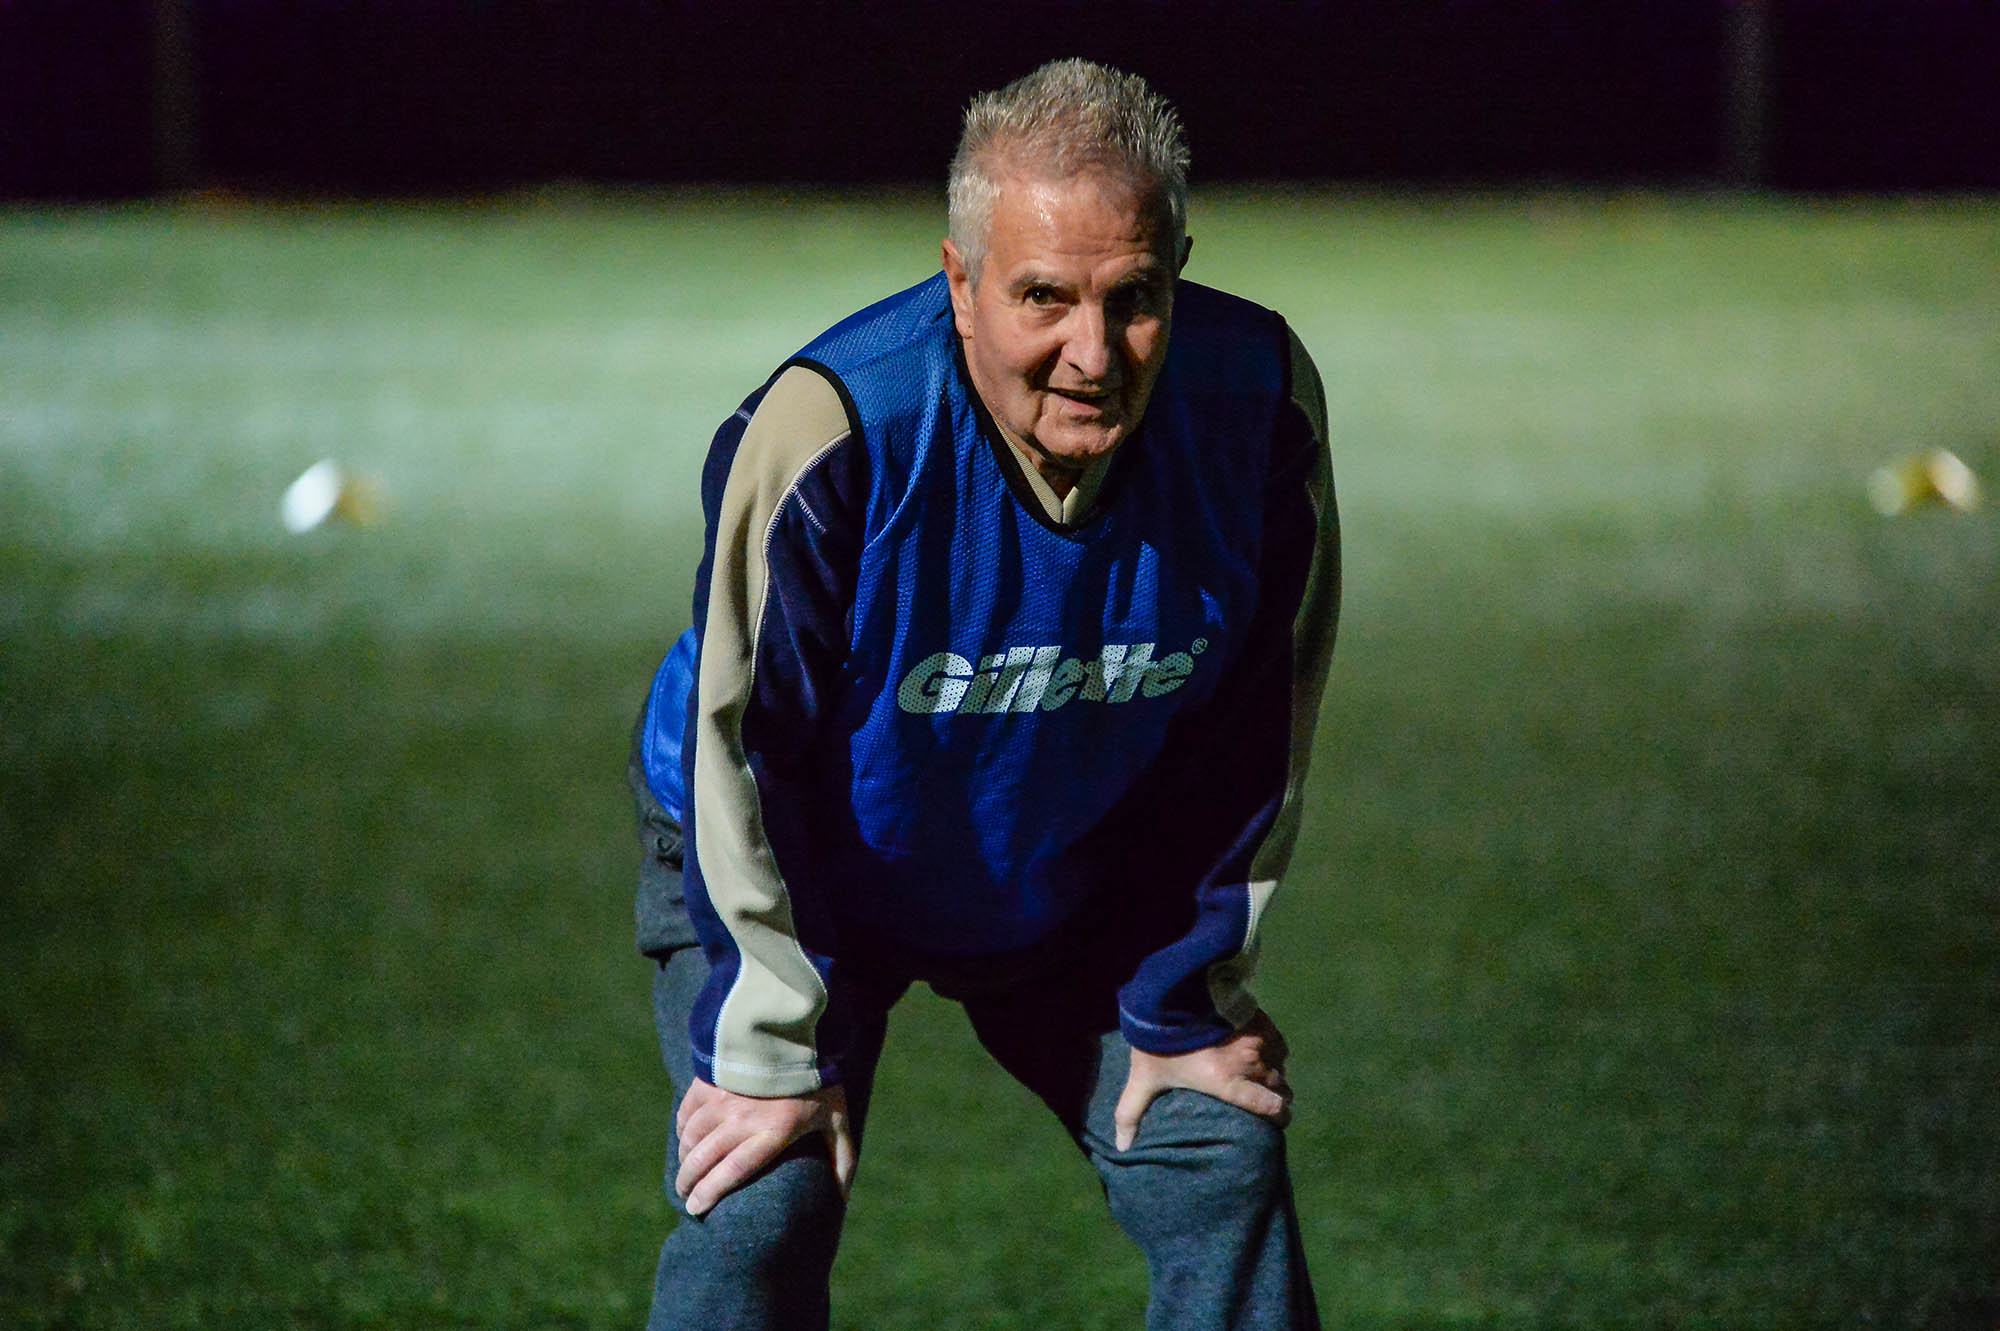 walking football 2